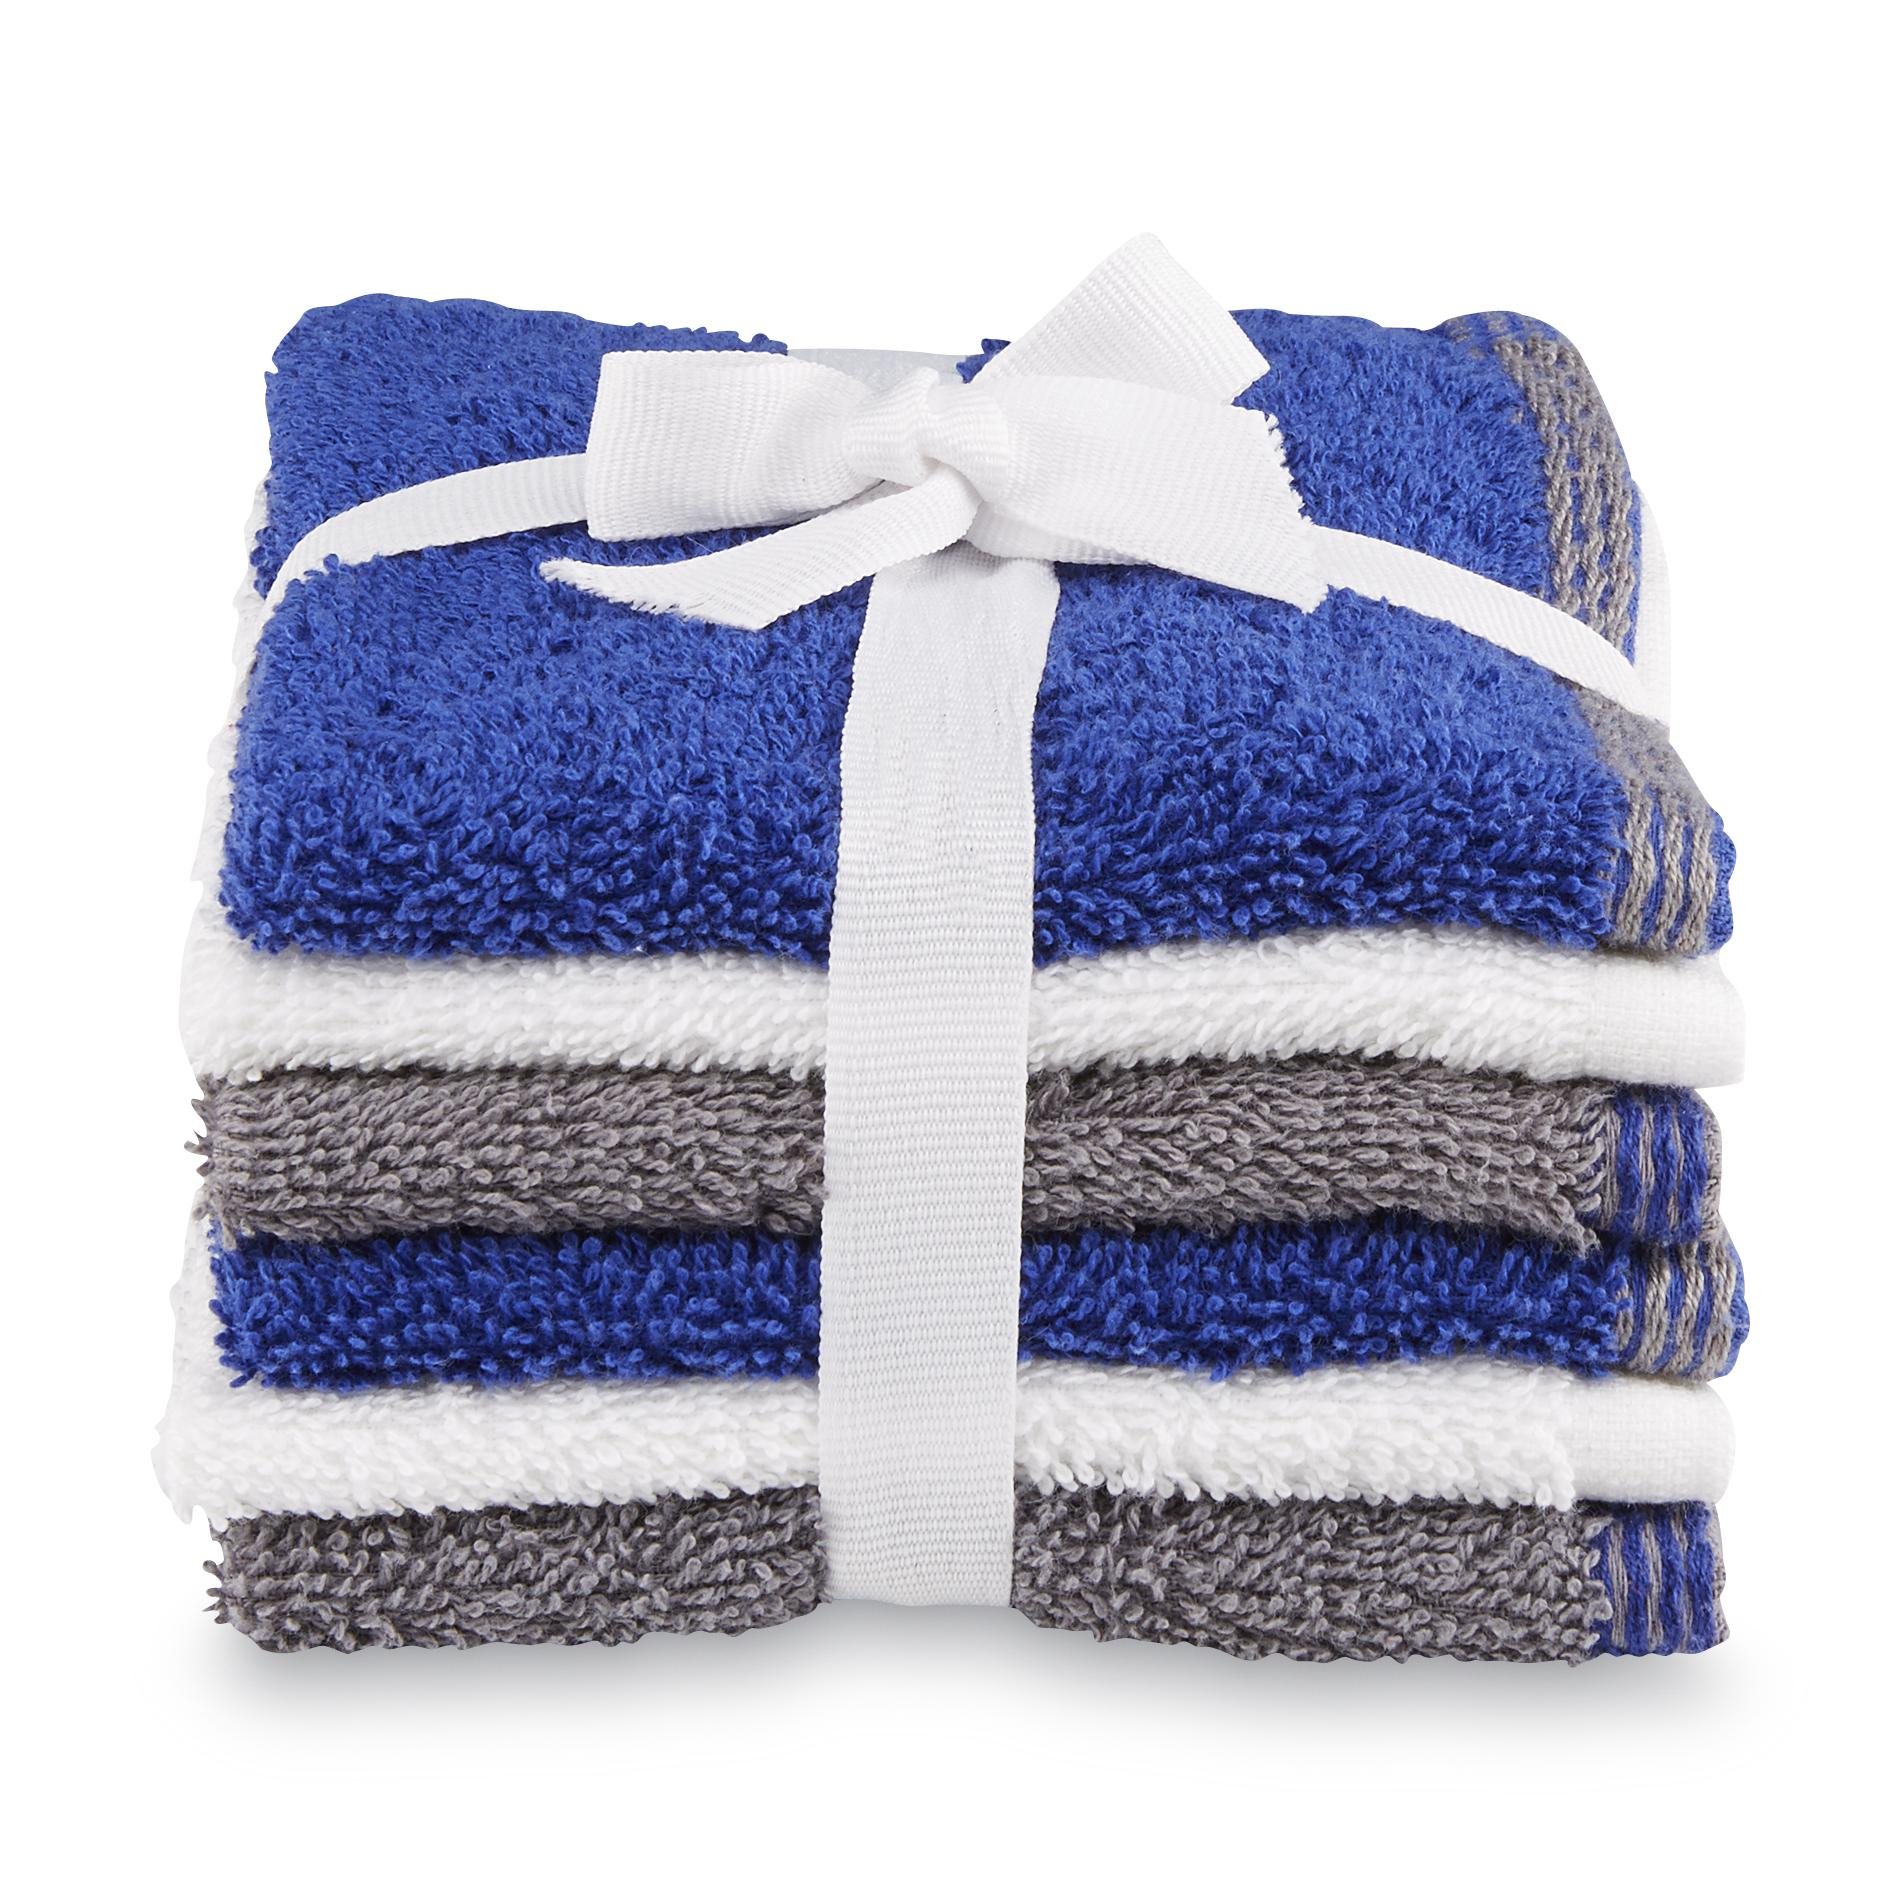 Essential Home 6-Pack Washcloths